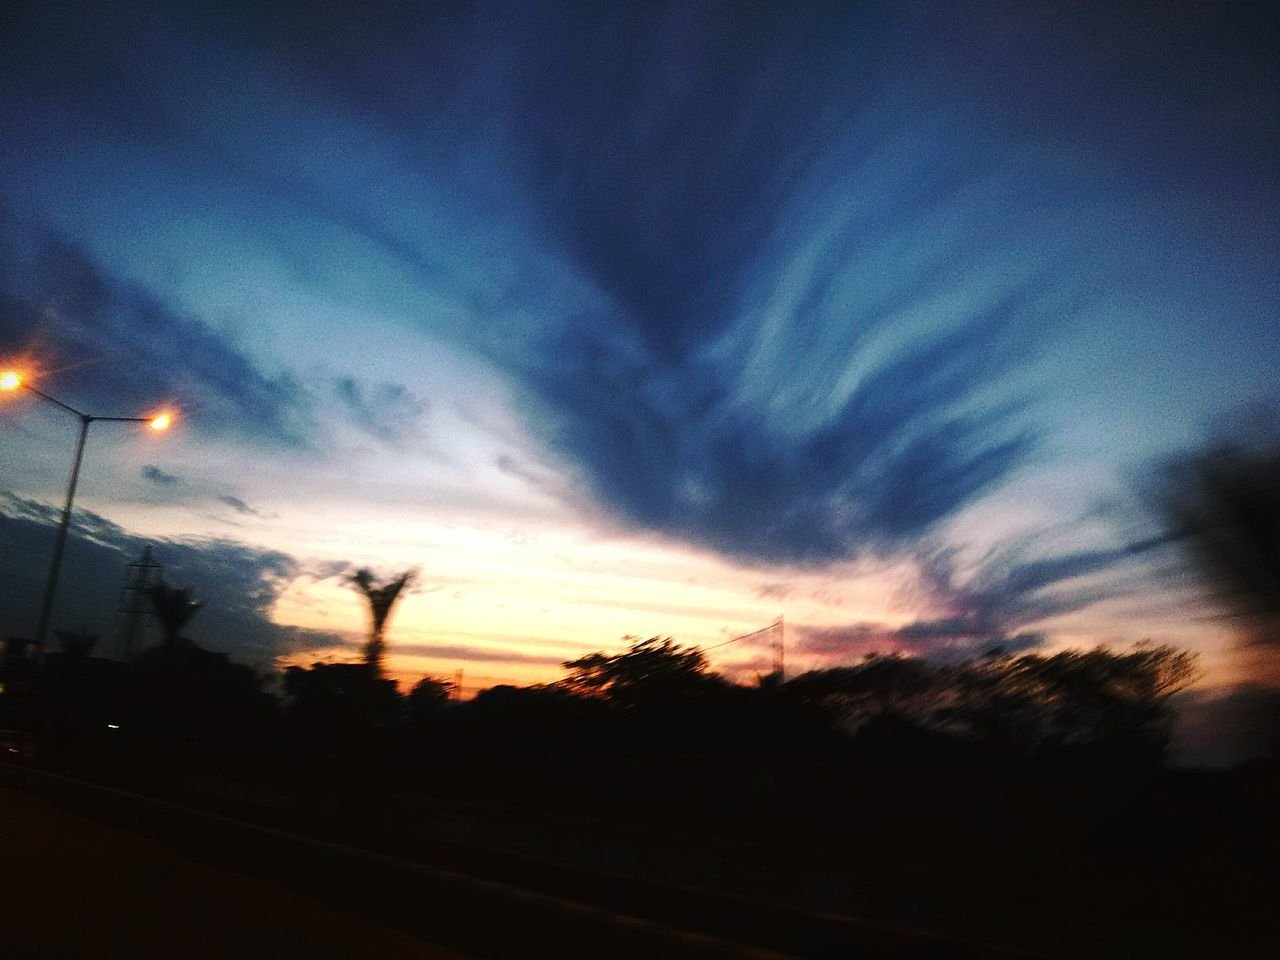 sunset, silhouette, sky, transportation, cloud - sky, scenics, nature, no people, beauty in nature, outdoors, tree, day